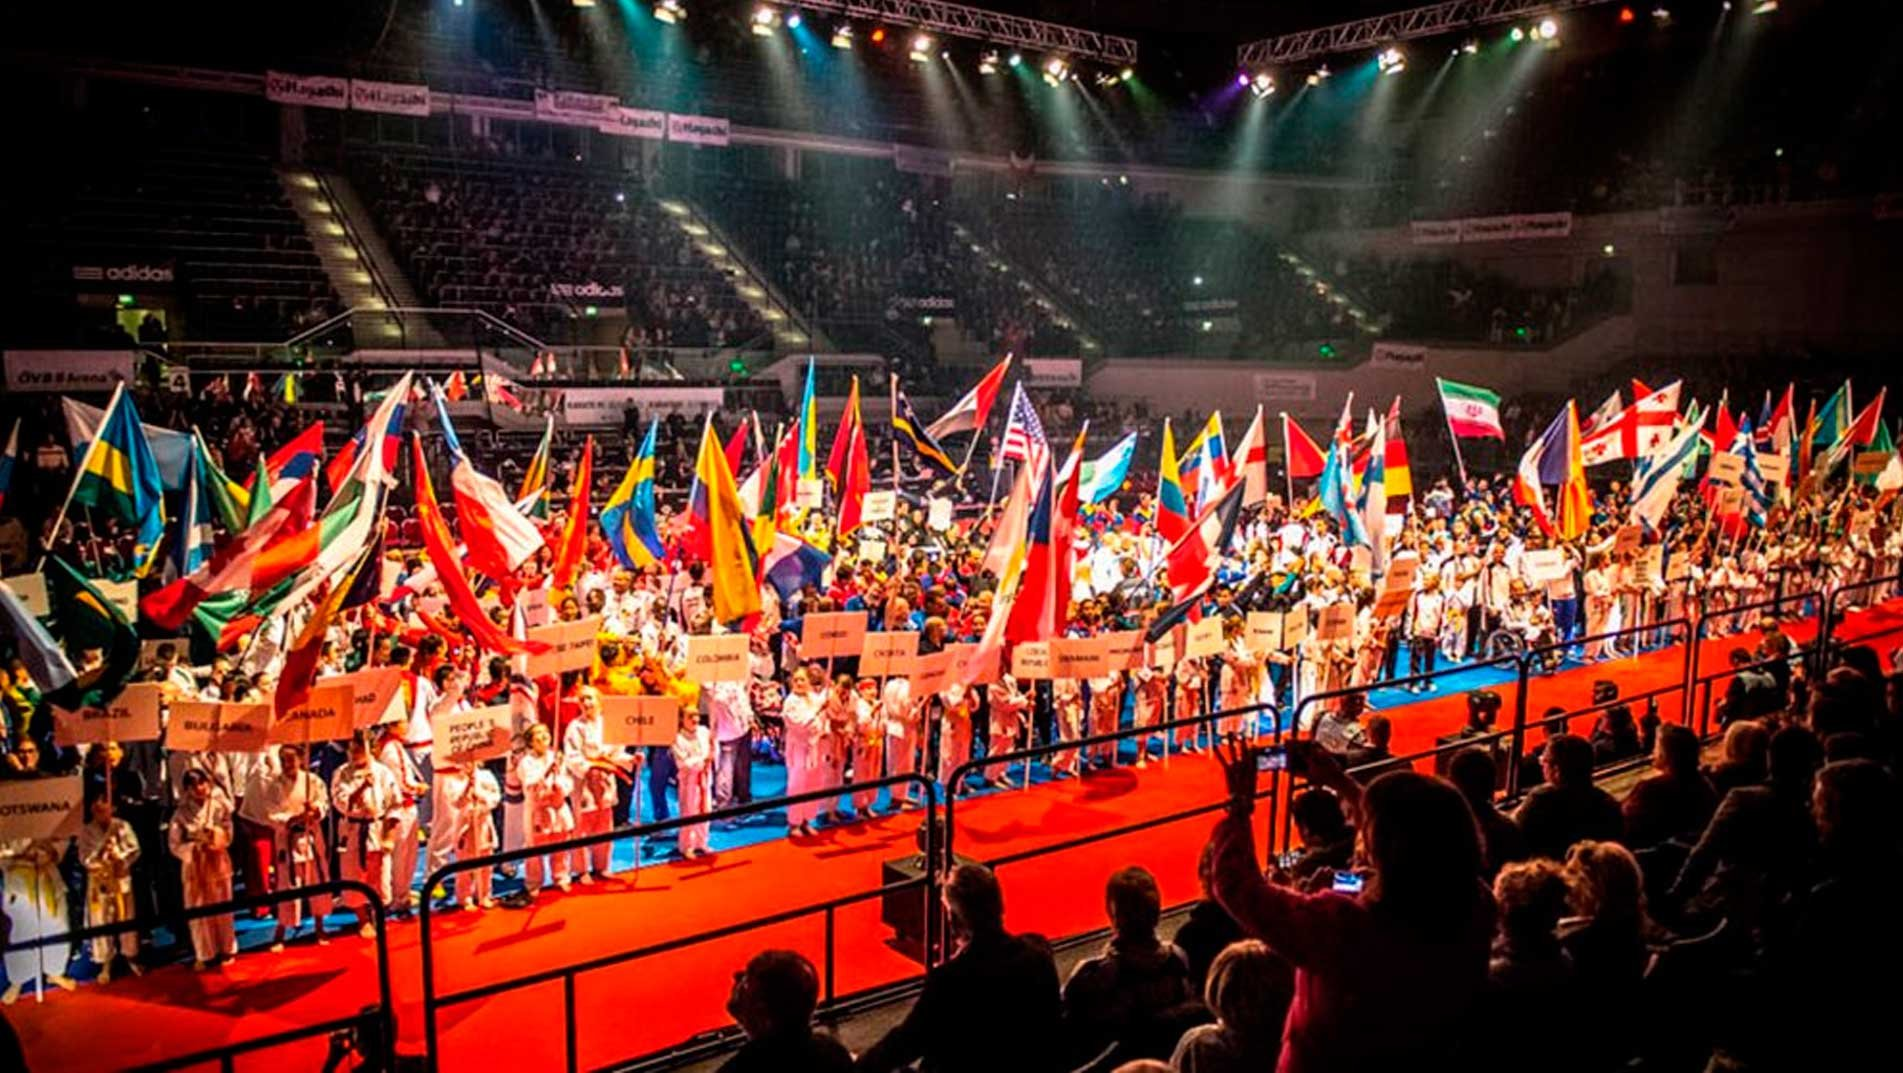 BREMEN 2014 - End of eliminations: 13 ries qualified athletes for the finals